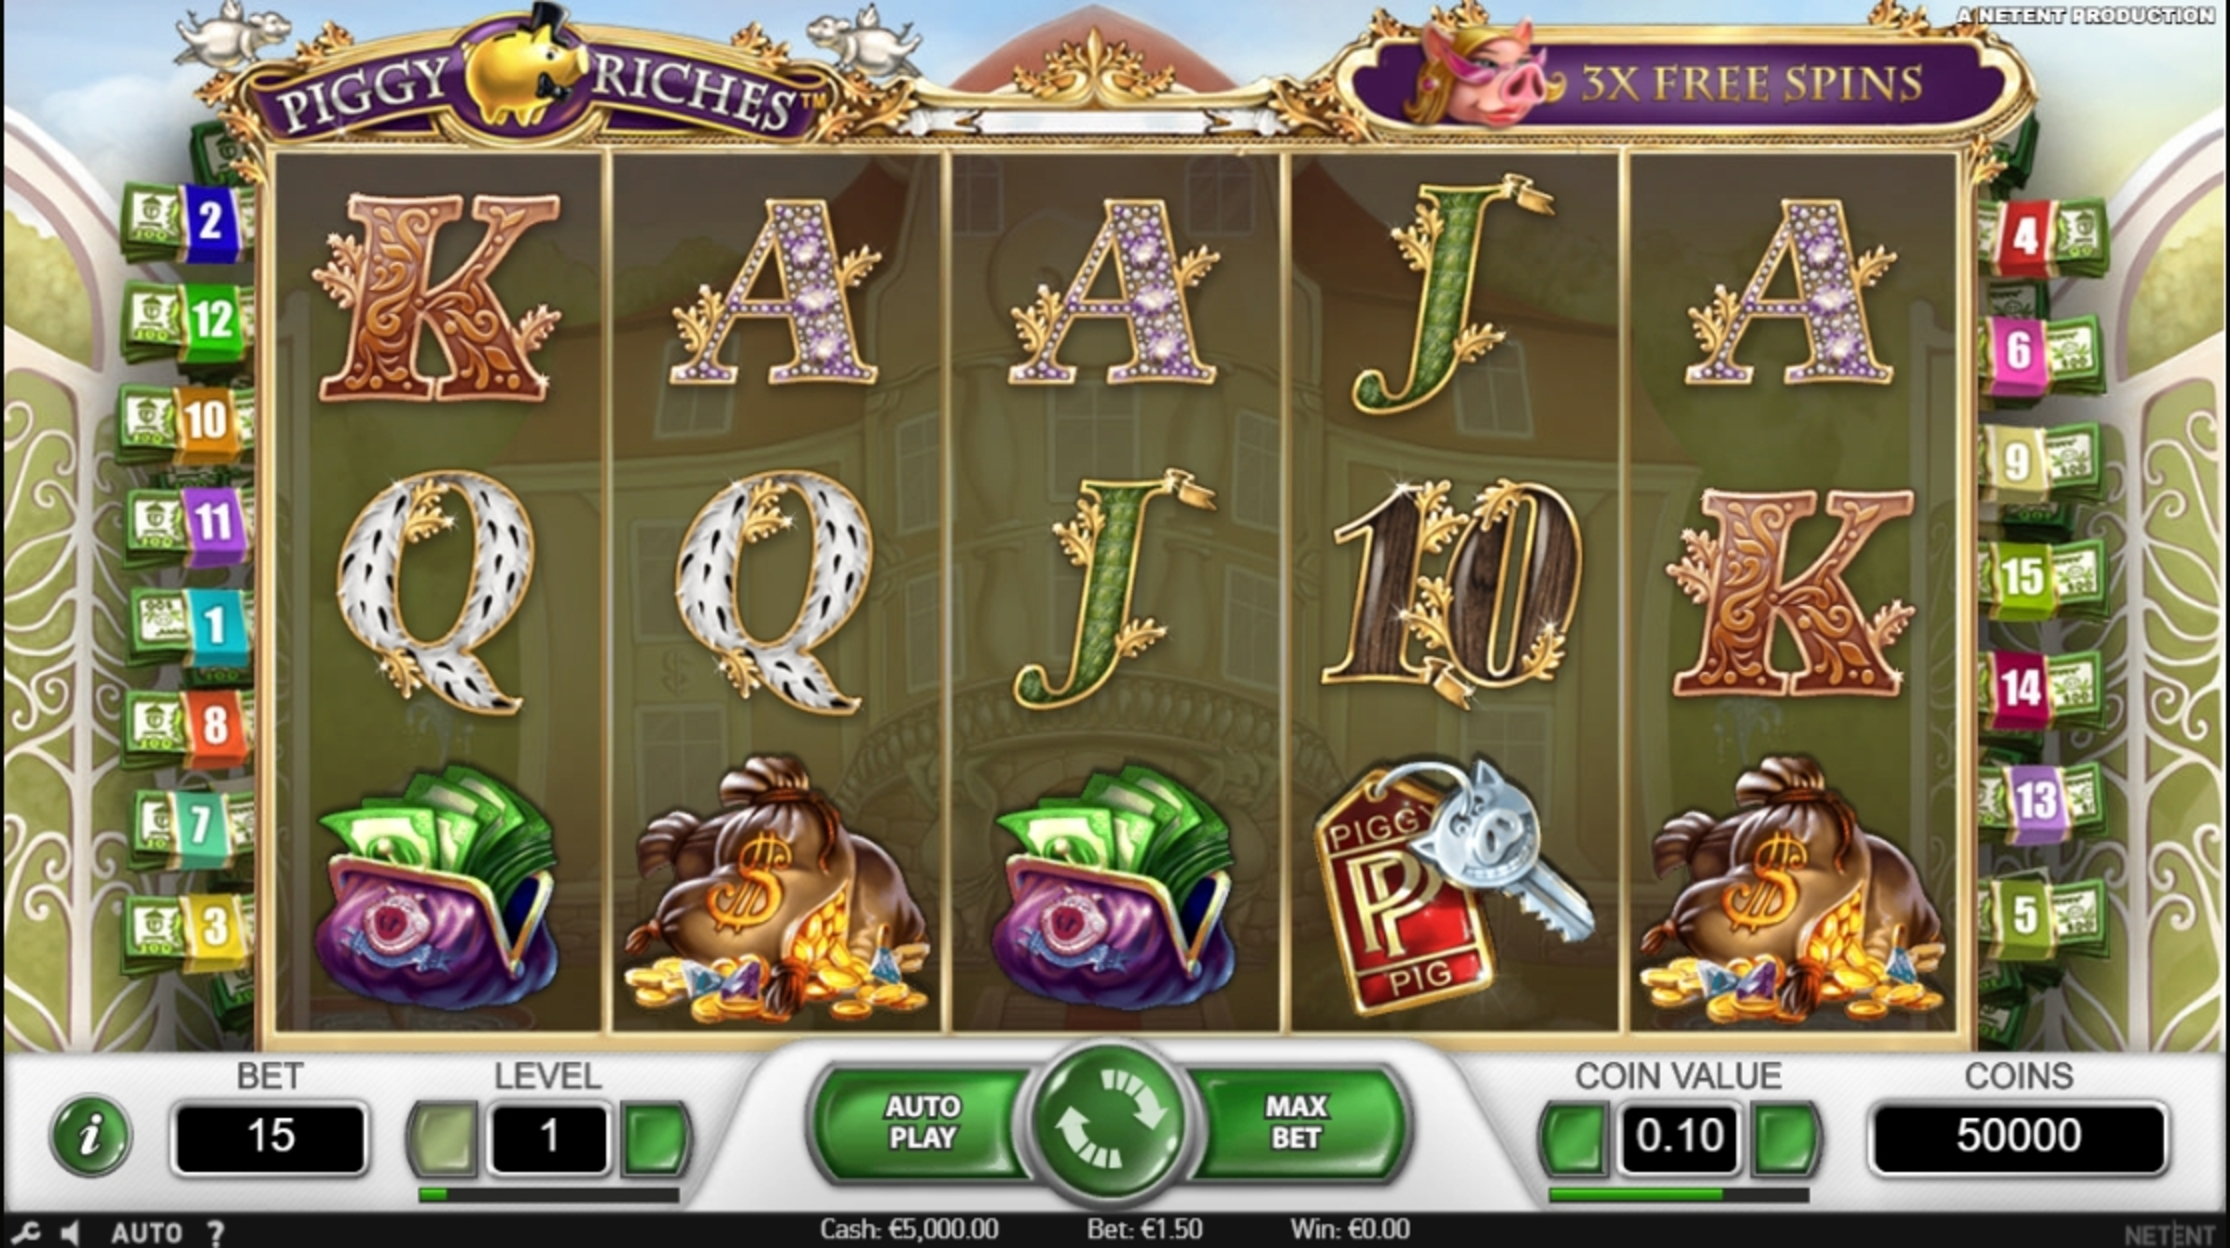 Reels in Piggy Riches Slot Game by NetEnt